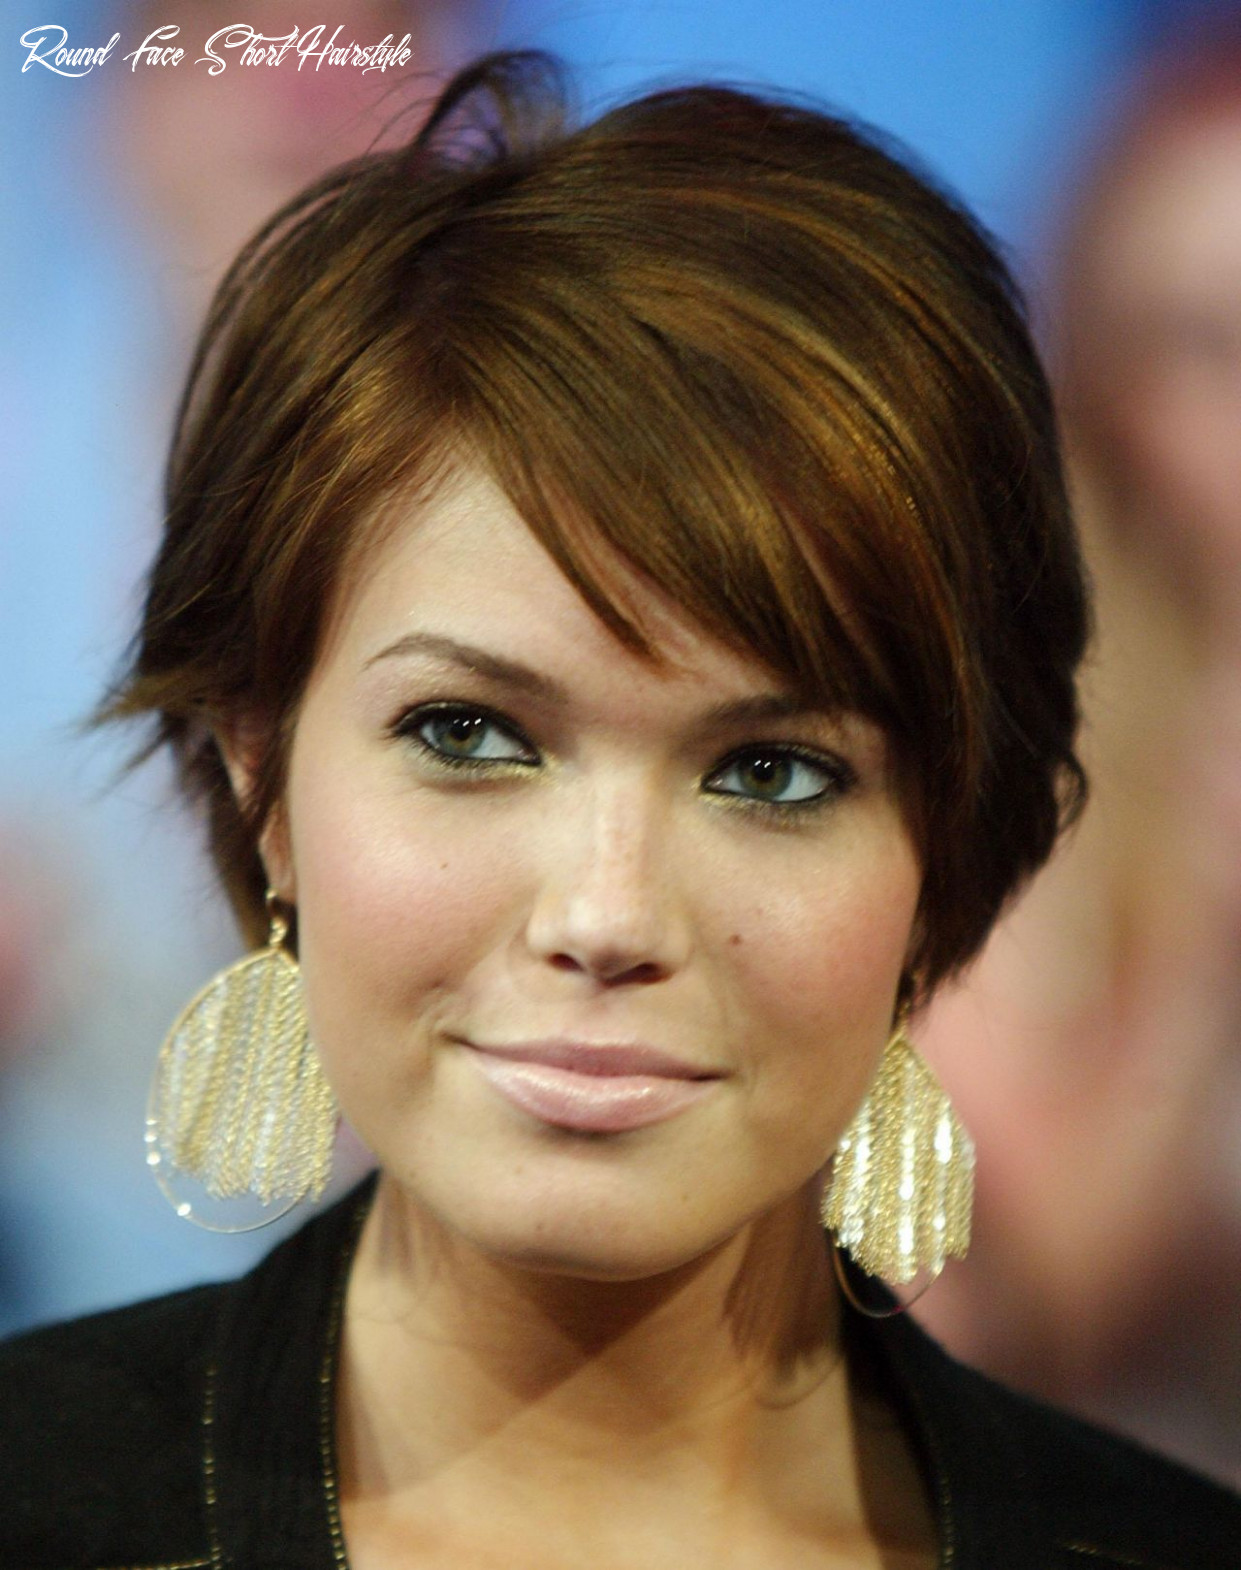 Pin on beauty round face short hairstyle